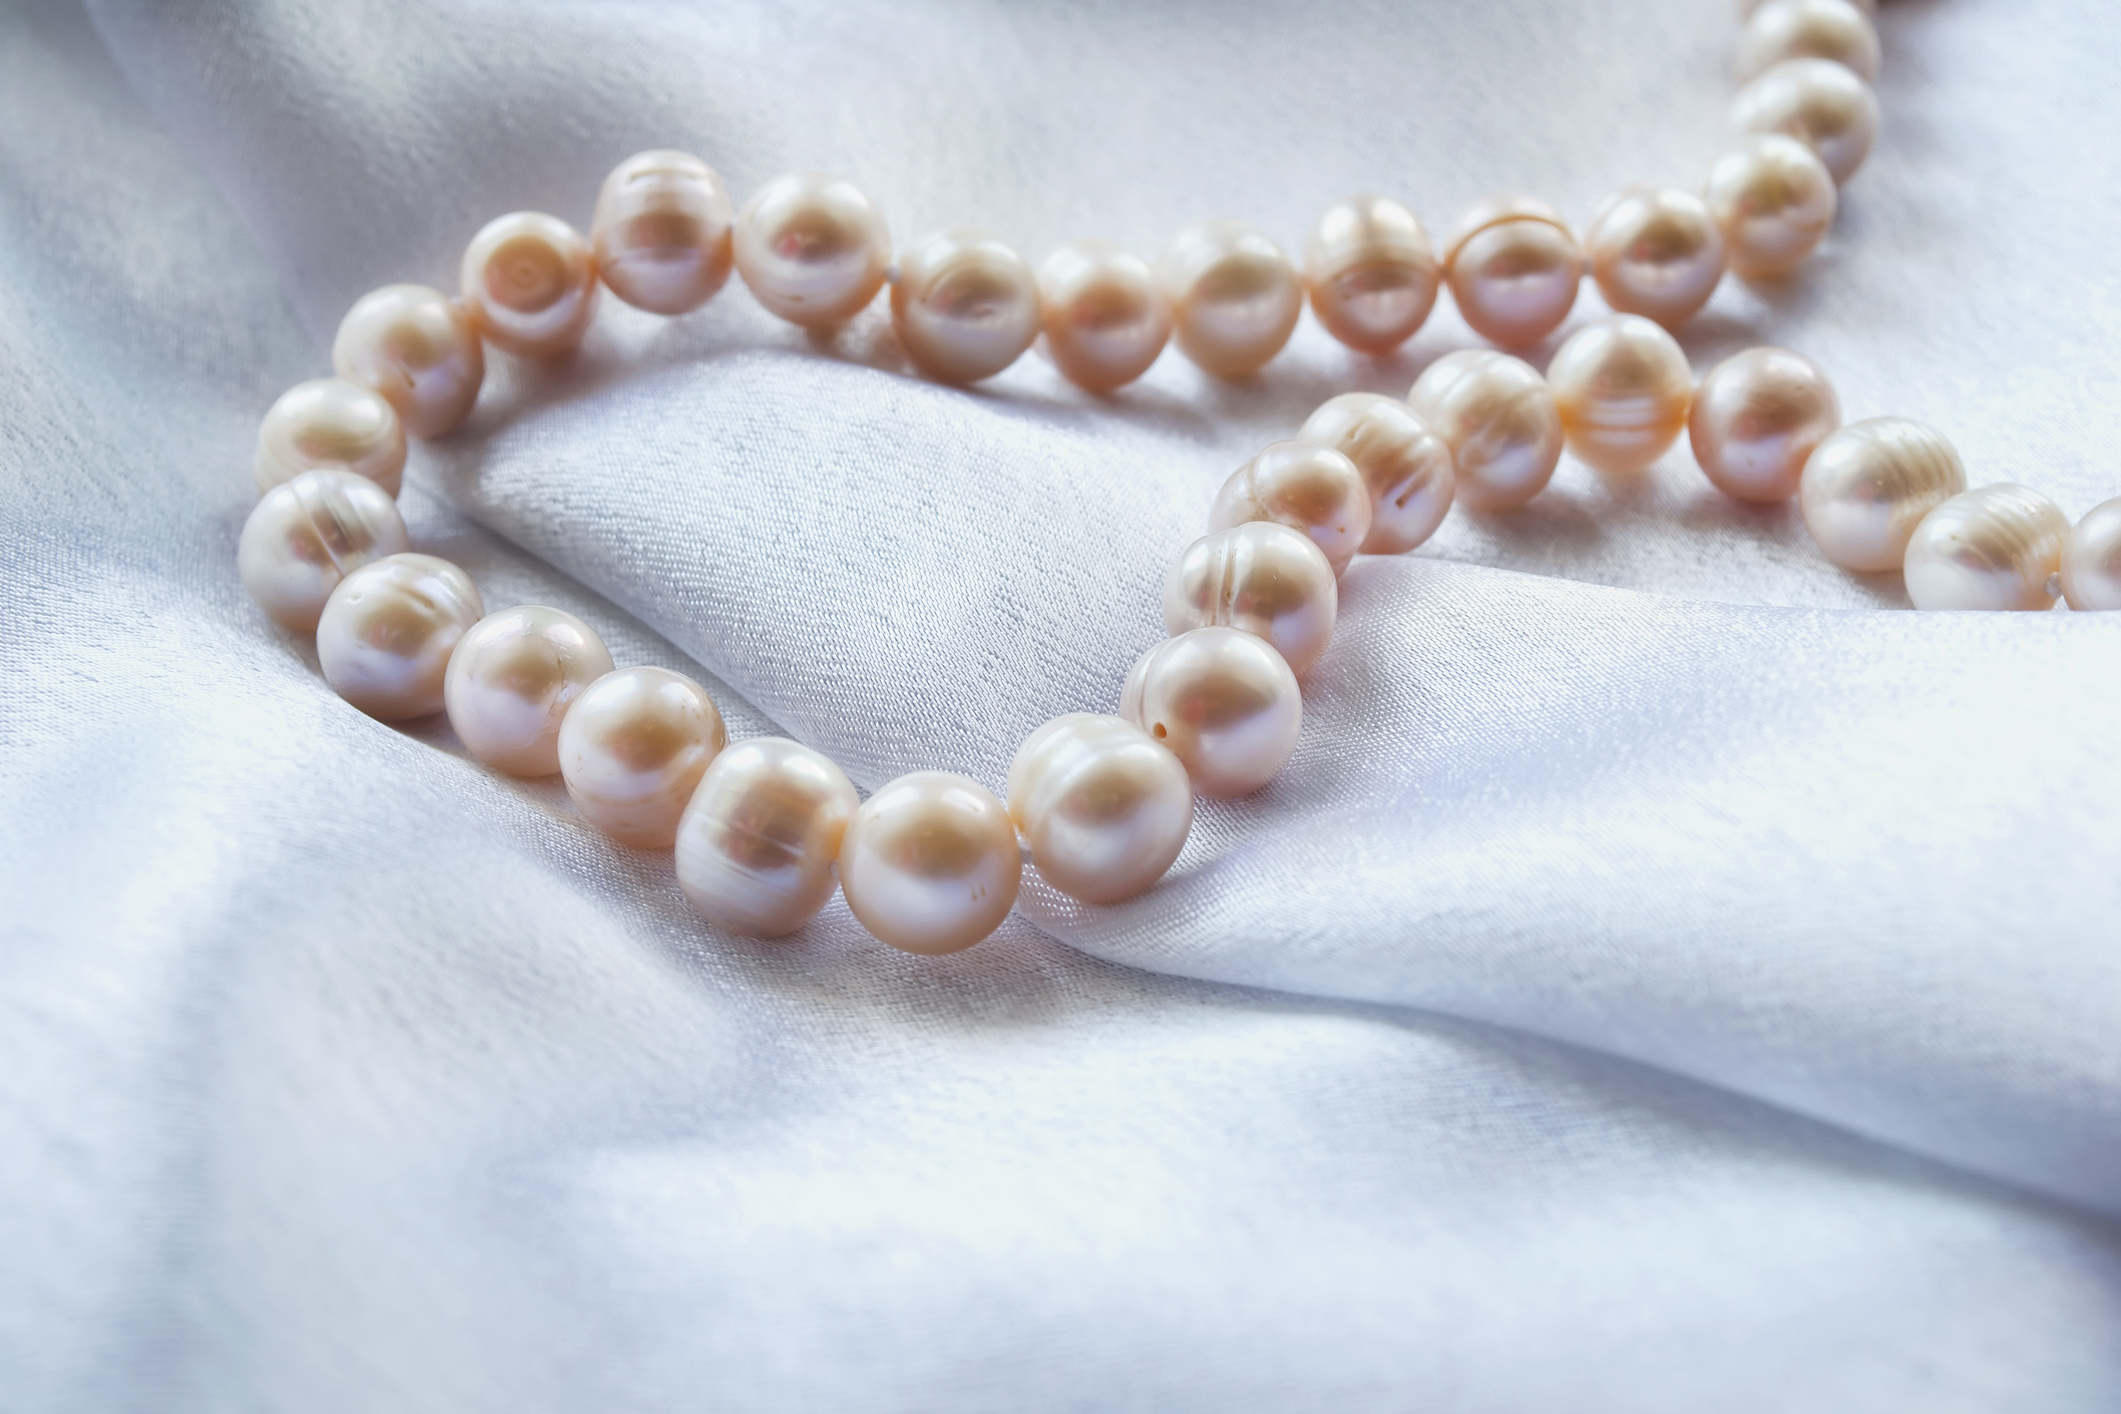 Pearl and Bead Stringing - Starting at $2.00 per inch.